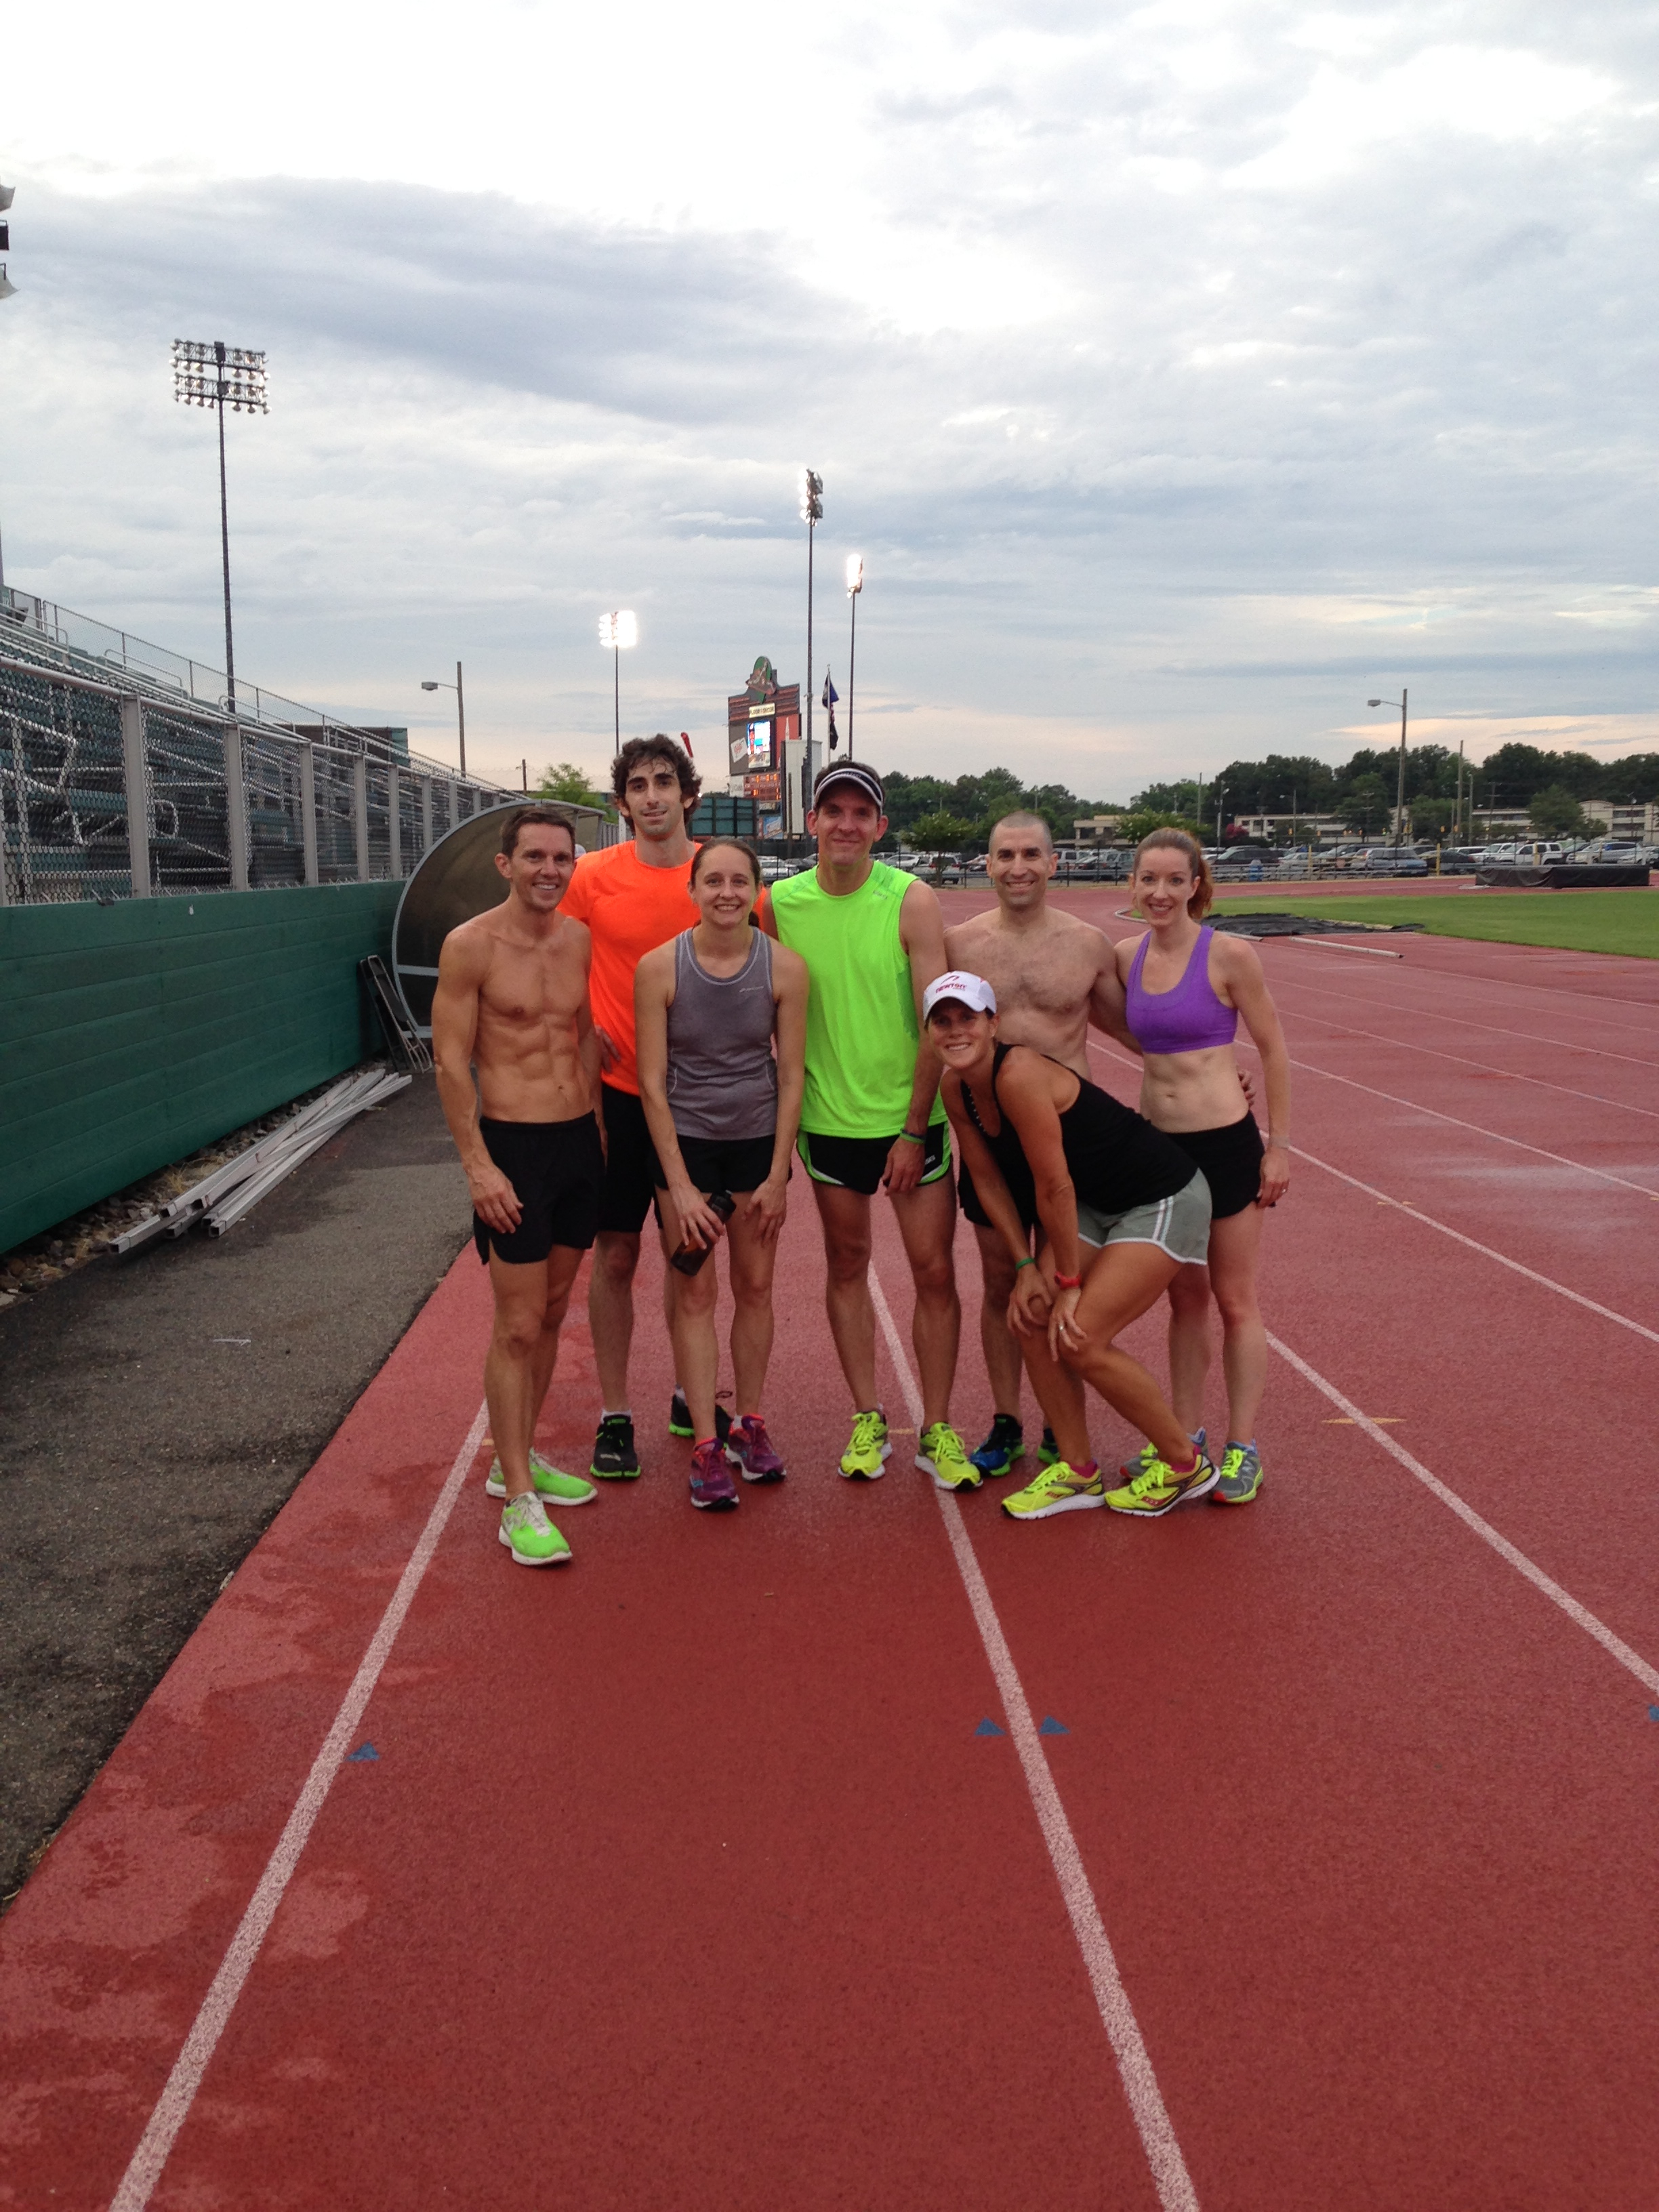 Our group at the track